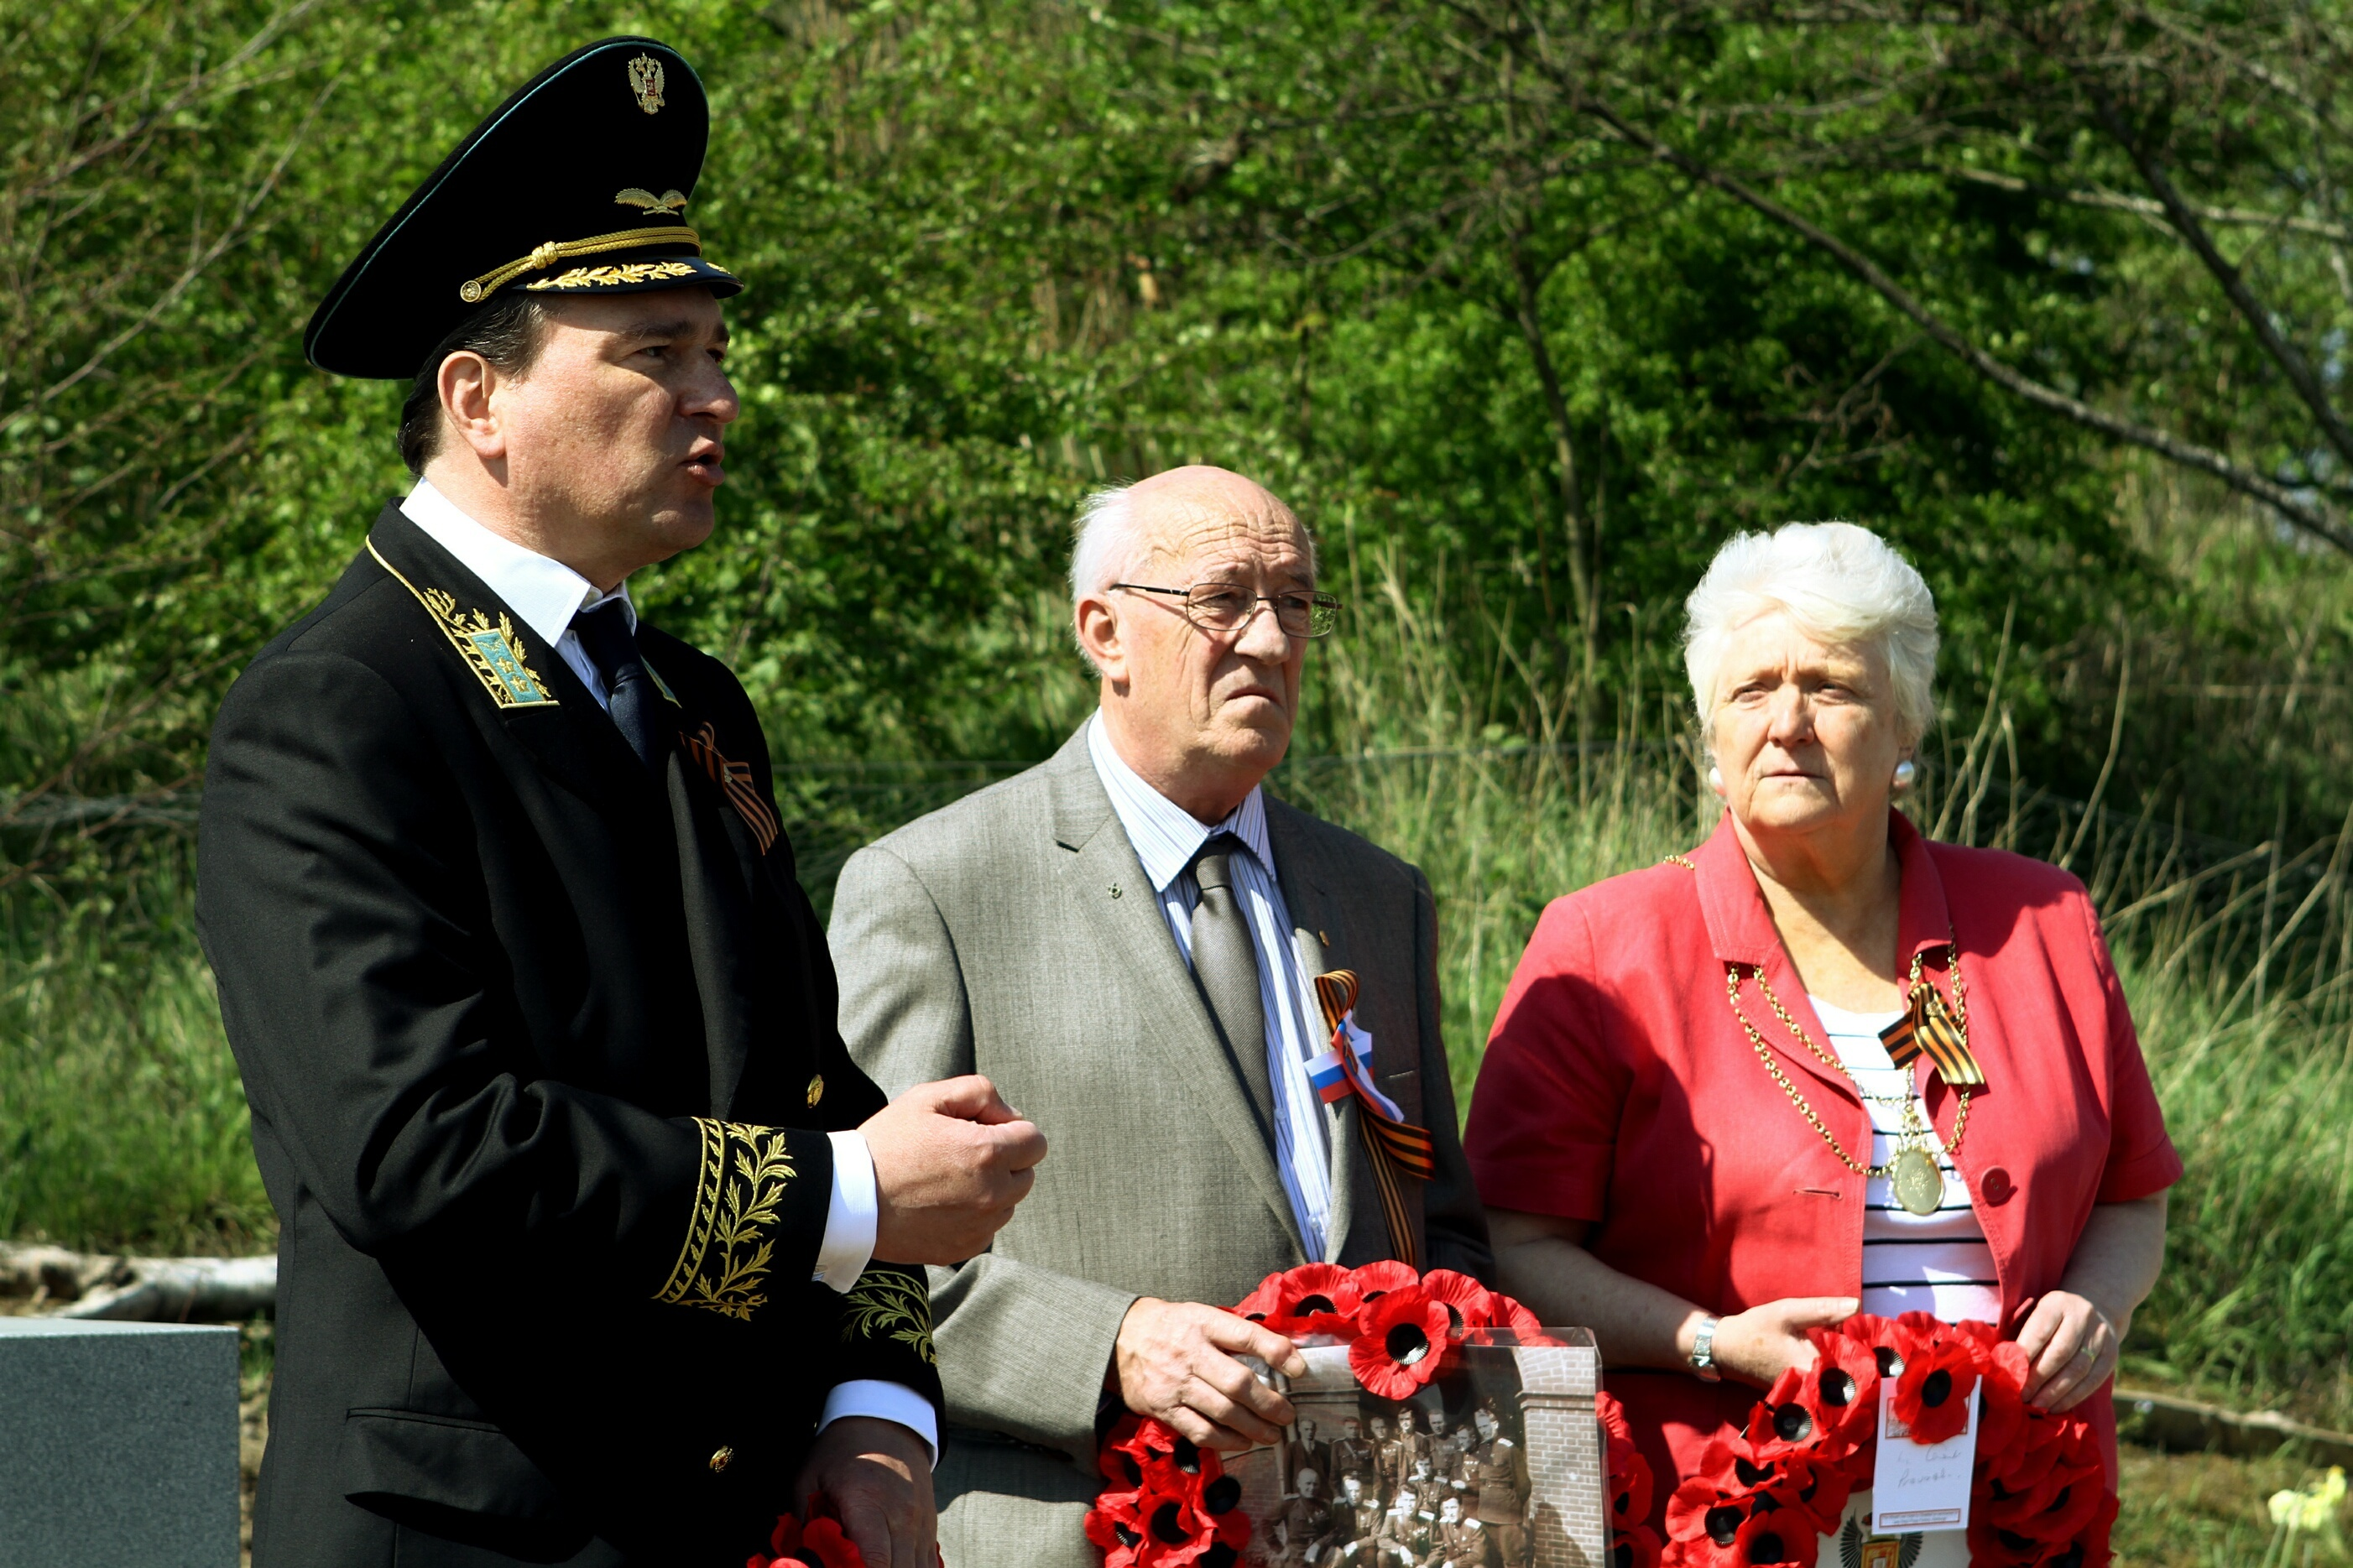 Last year's ceremony for the Russian airmen who were based at Errol Airfield L/R, Andrey Pritsepov - Consul General, Russian Federation in Edinburgh, Bradley Borland - aviation enthusiast and Perth Provost Liz Grant. Story by Perth office.